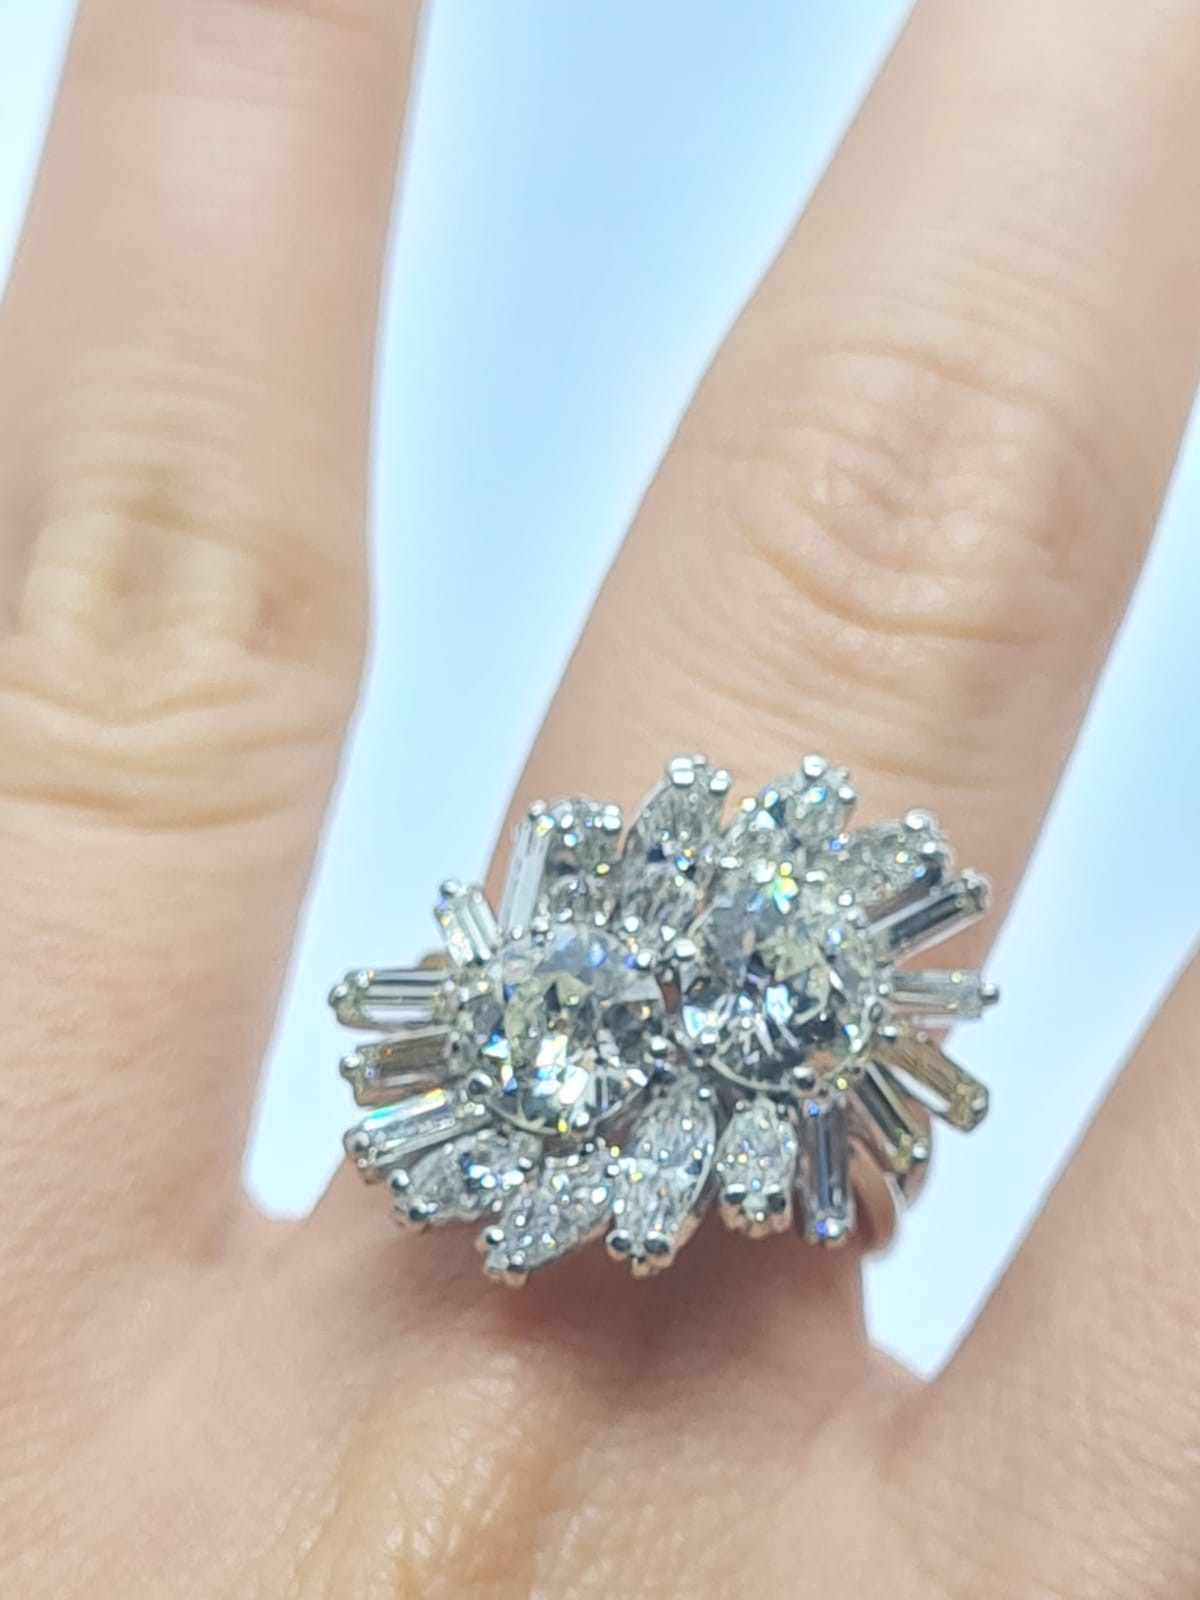 18k white gold diamond cluster ring with approx over 5ct diamonds in total, weight 10g and size M1/2 - Image 9 of 11